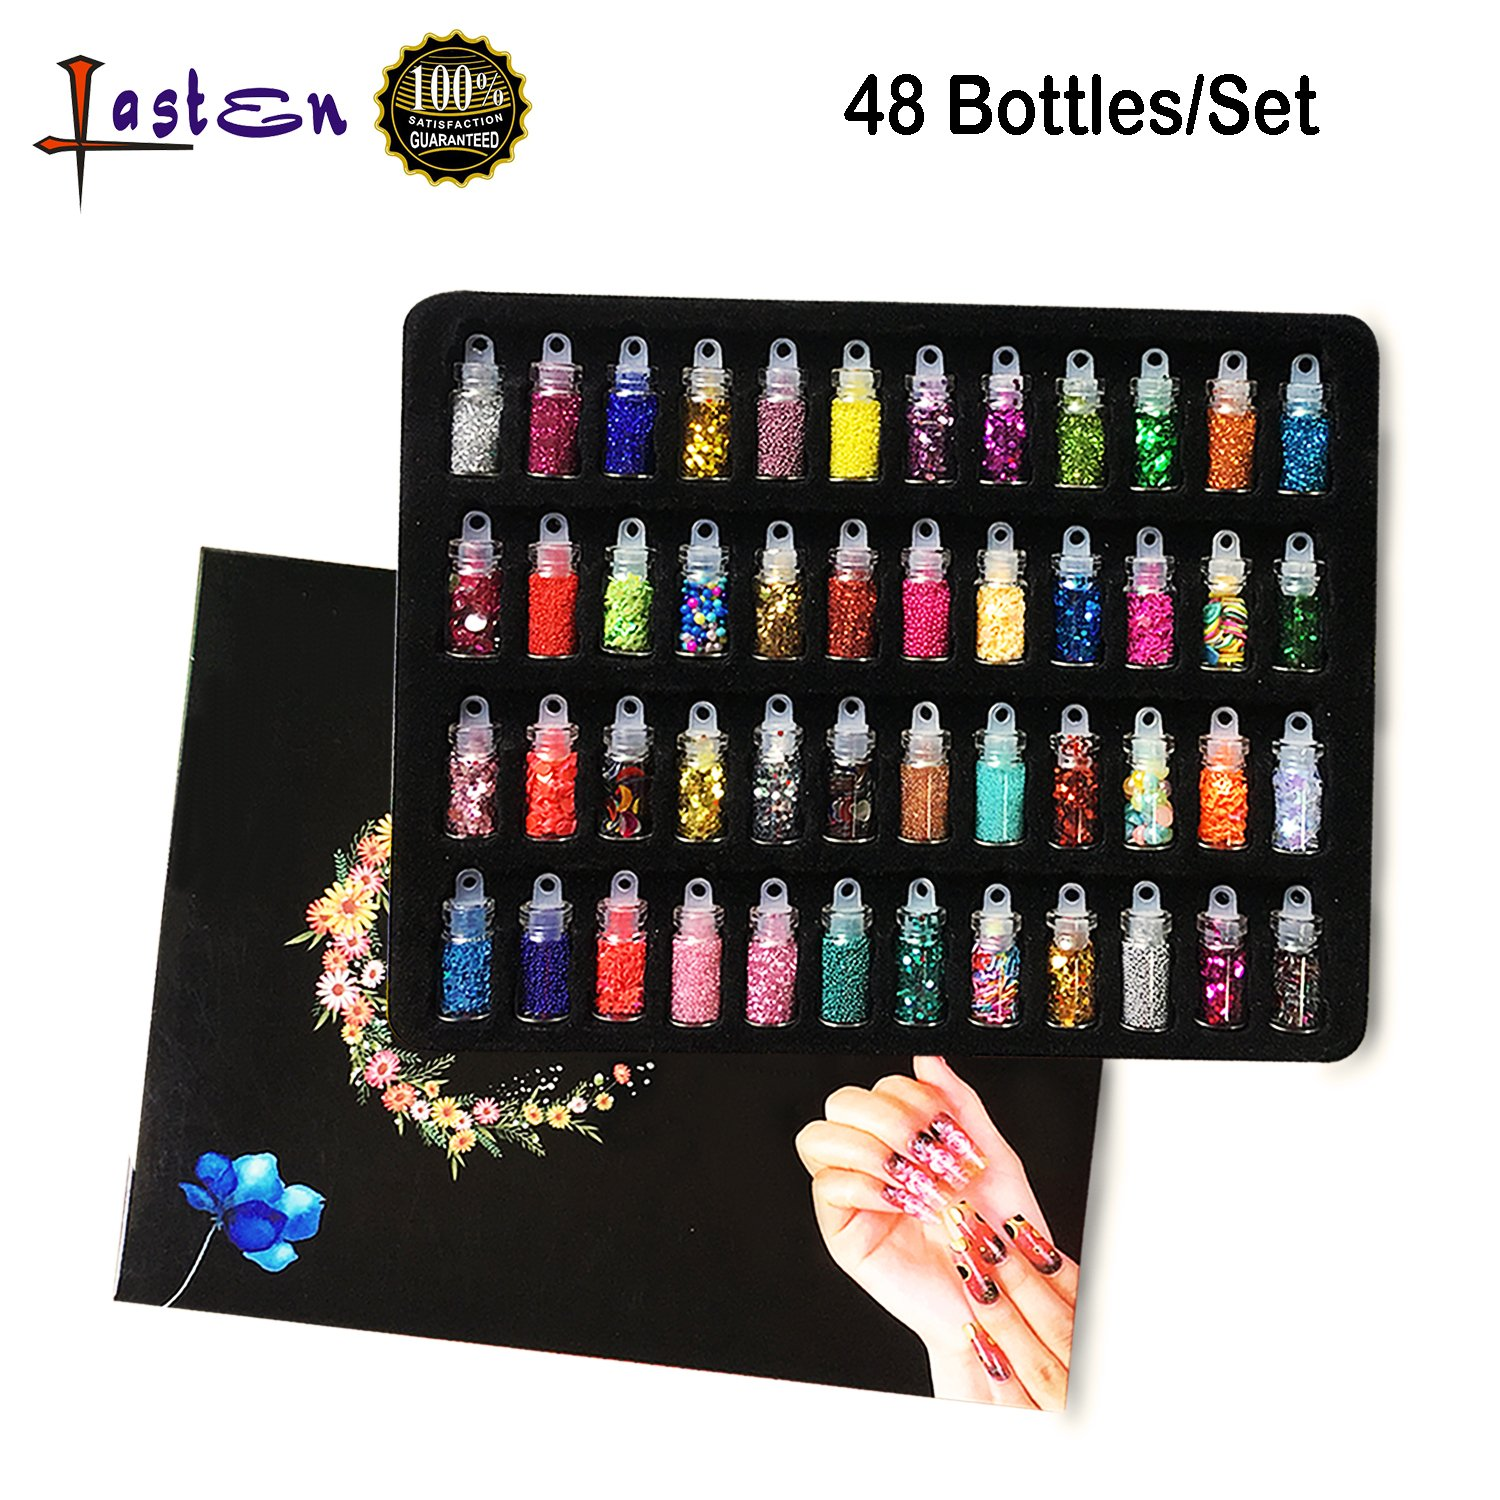 48 Bottles Glitter Shake Jars Set by Lasten , Glitter Powder Sequins for Slime Making,3D Nail Art Decoration, Eye Hair Face Body Makeup, Phones,Cards,Scrapbook, Party Invitation Lasten-US